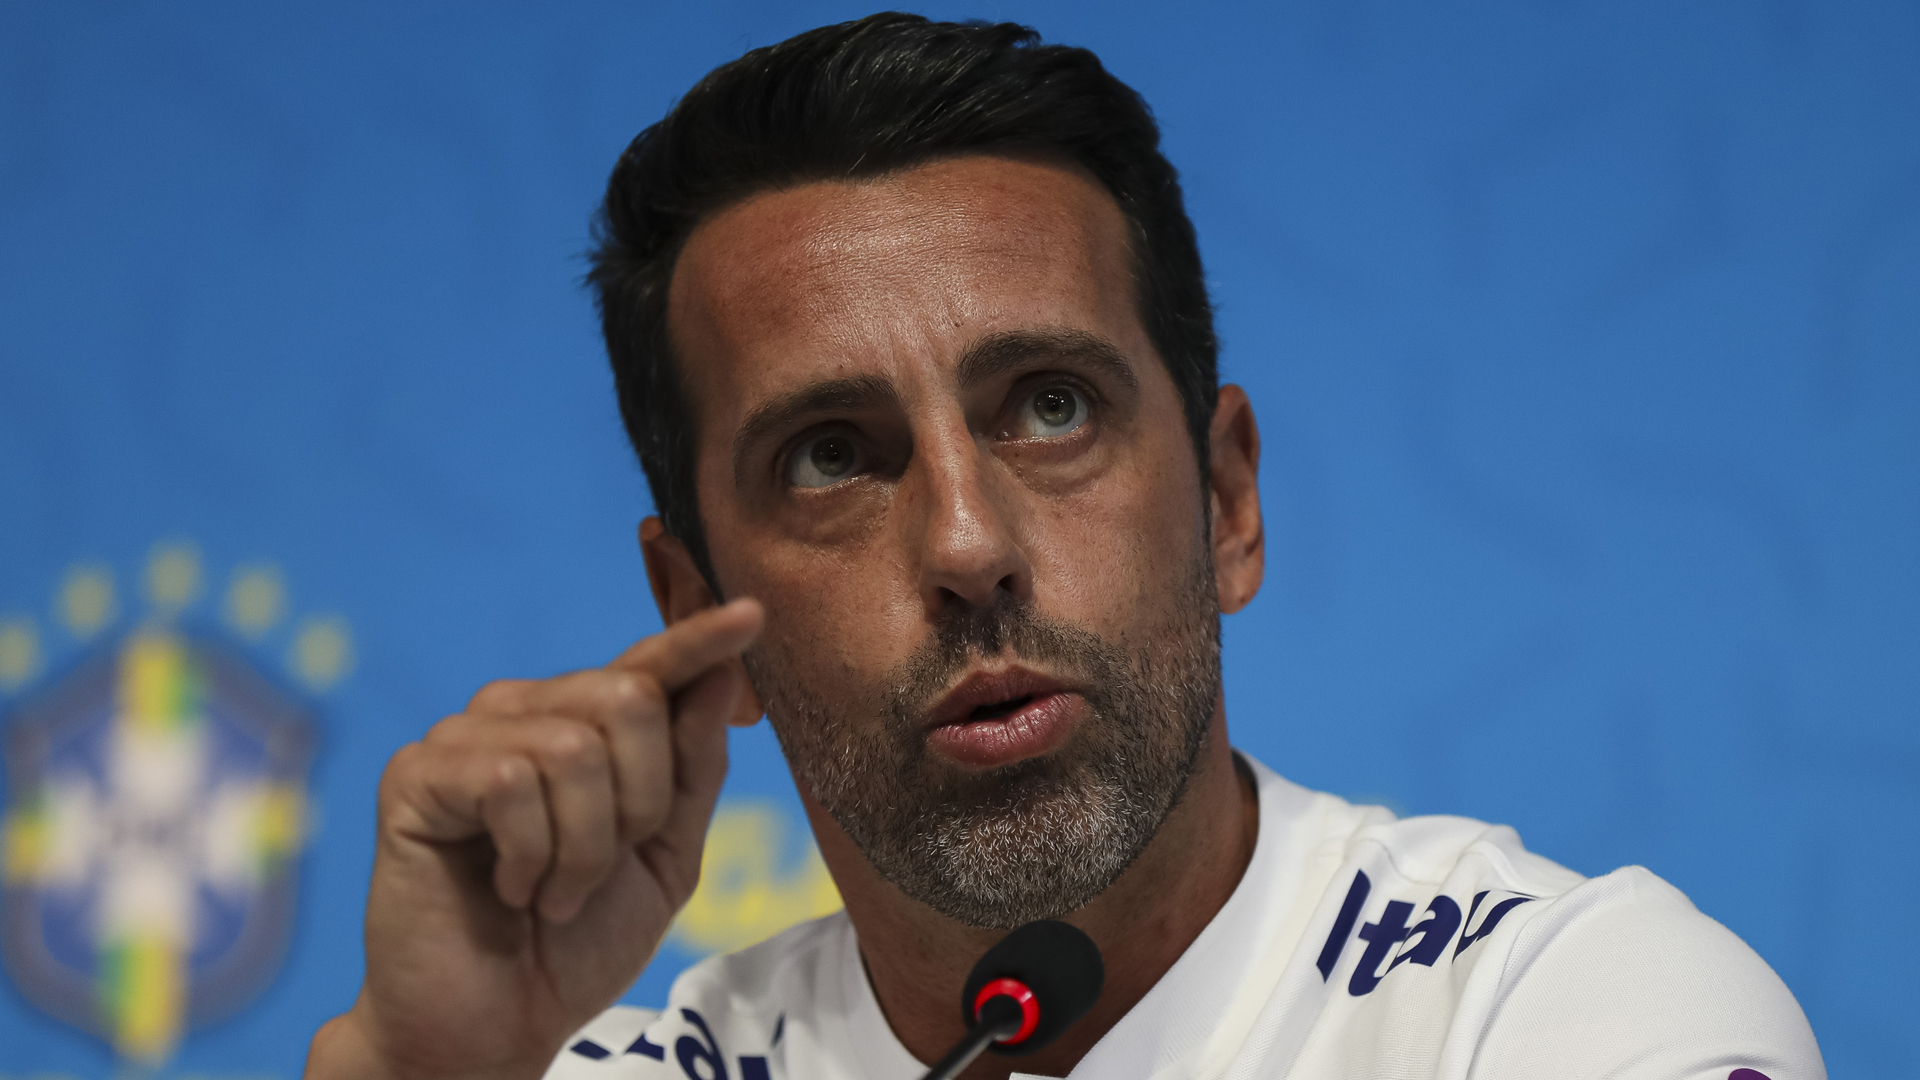 Edu replaced by Brazil amid Arsenal reports